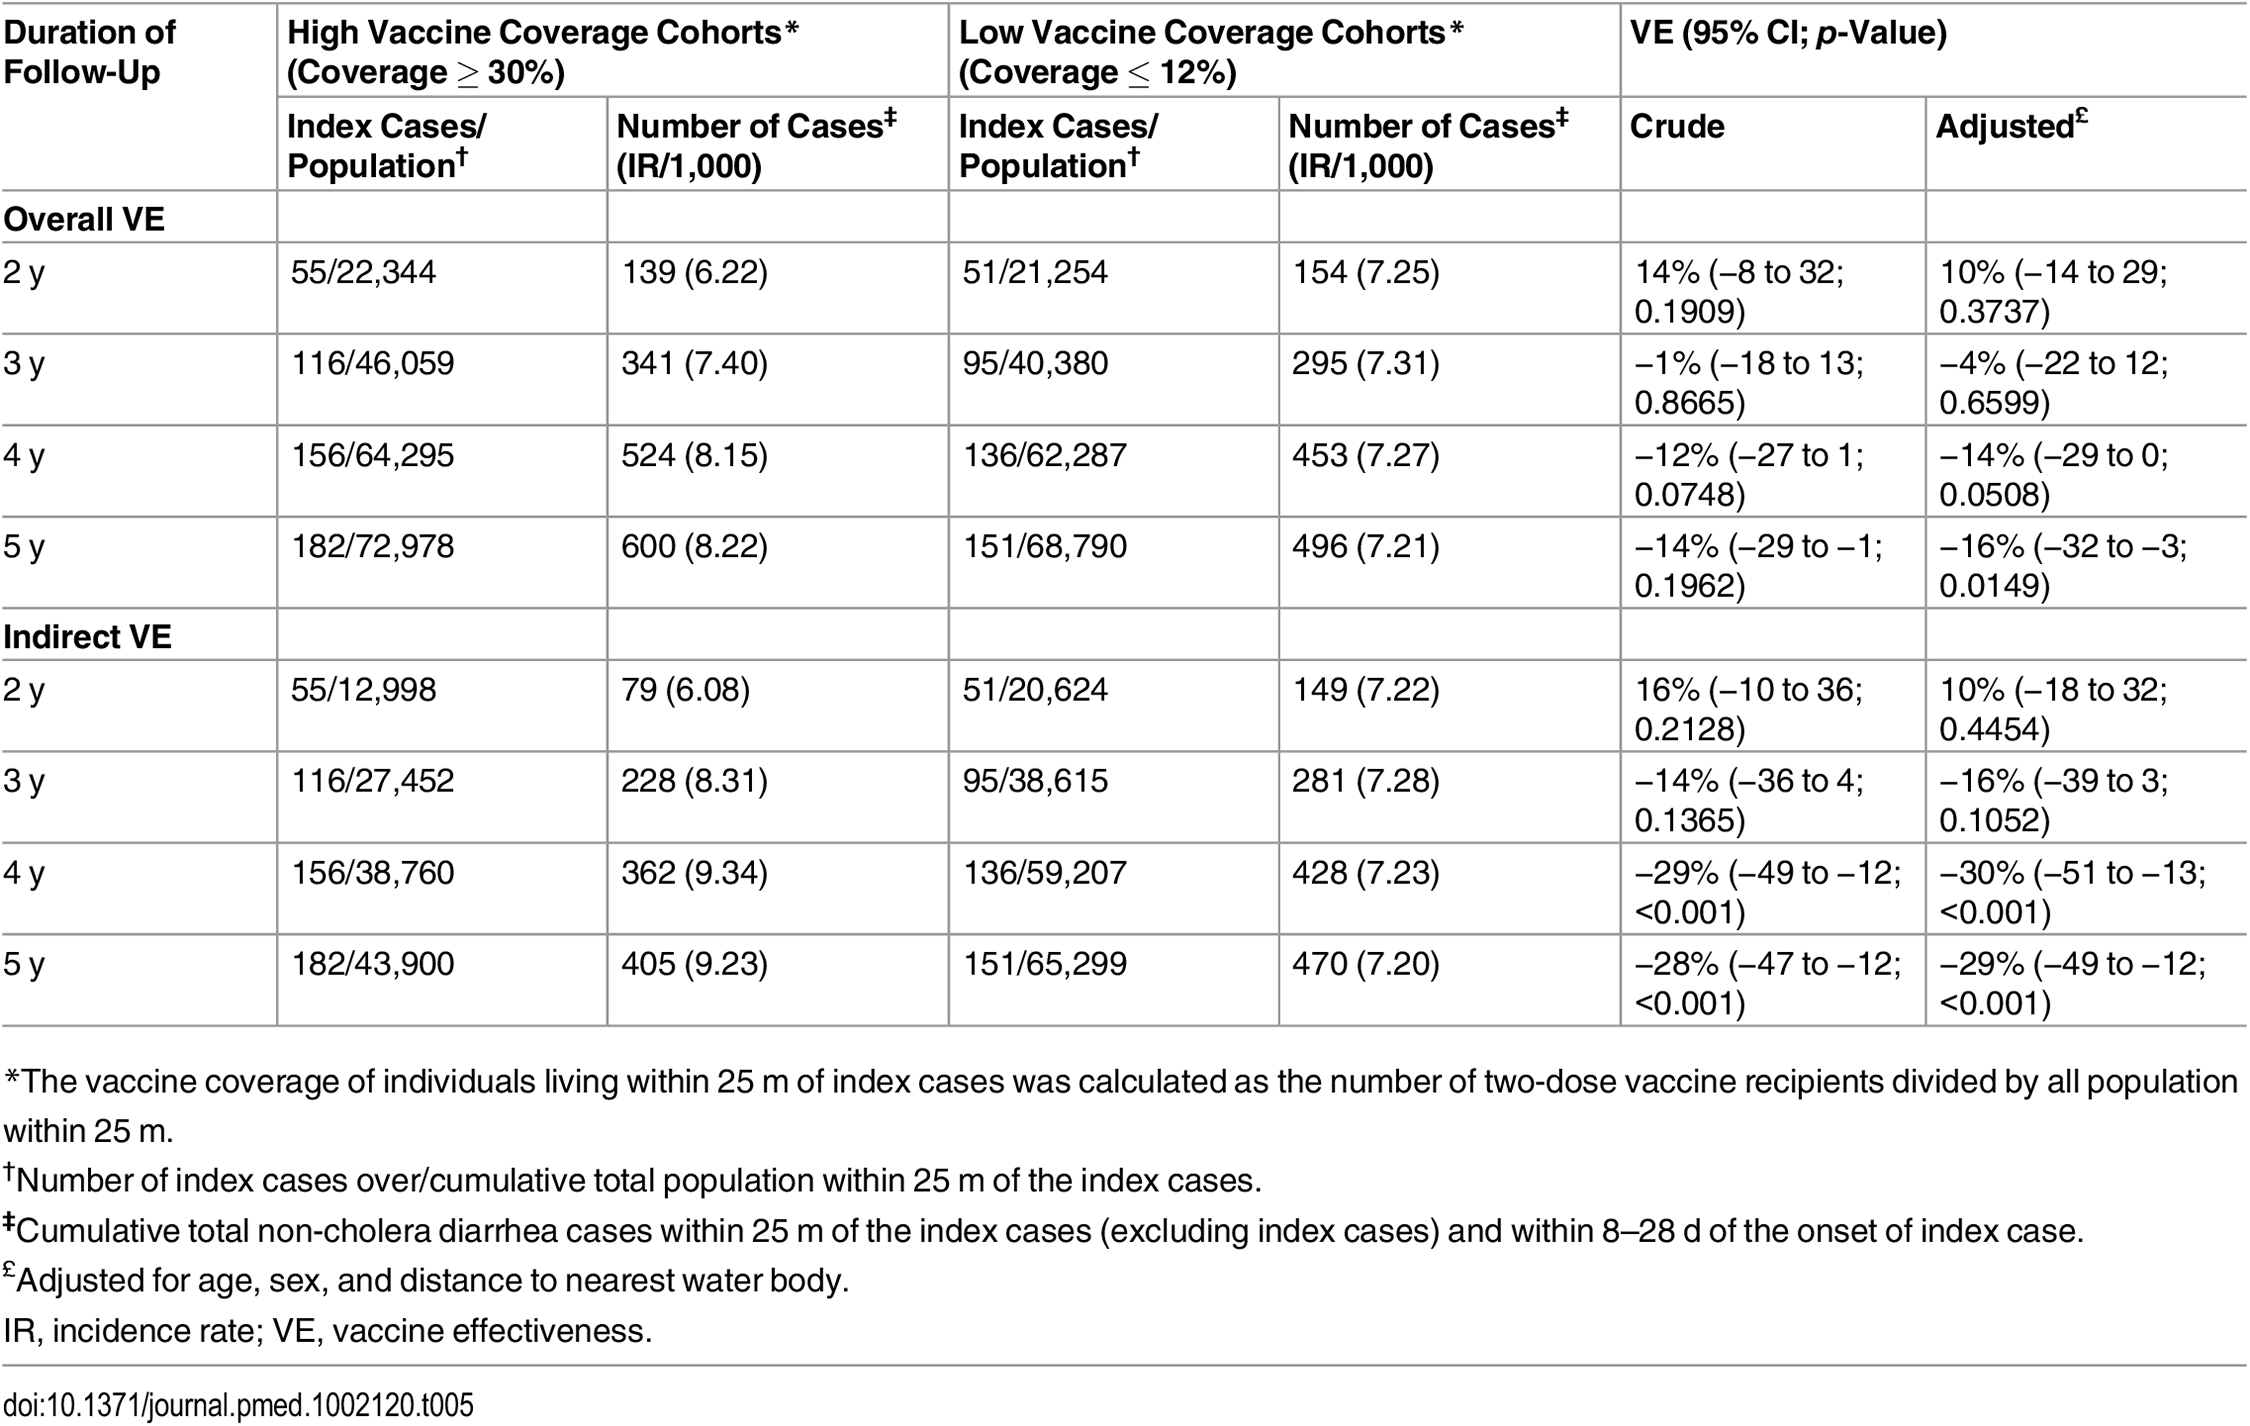 Overall and indirect vaccine effectiveness against non-cholera diarrhea using ring vaccination strategy.